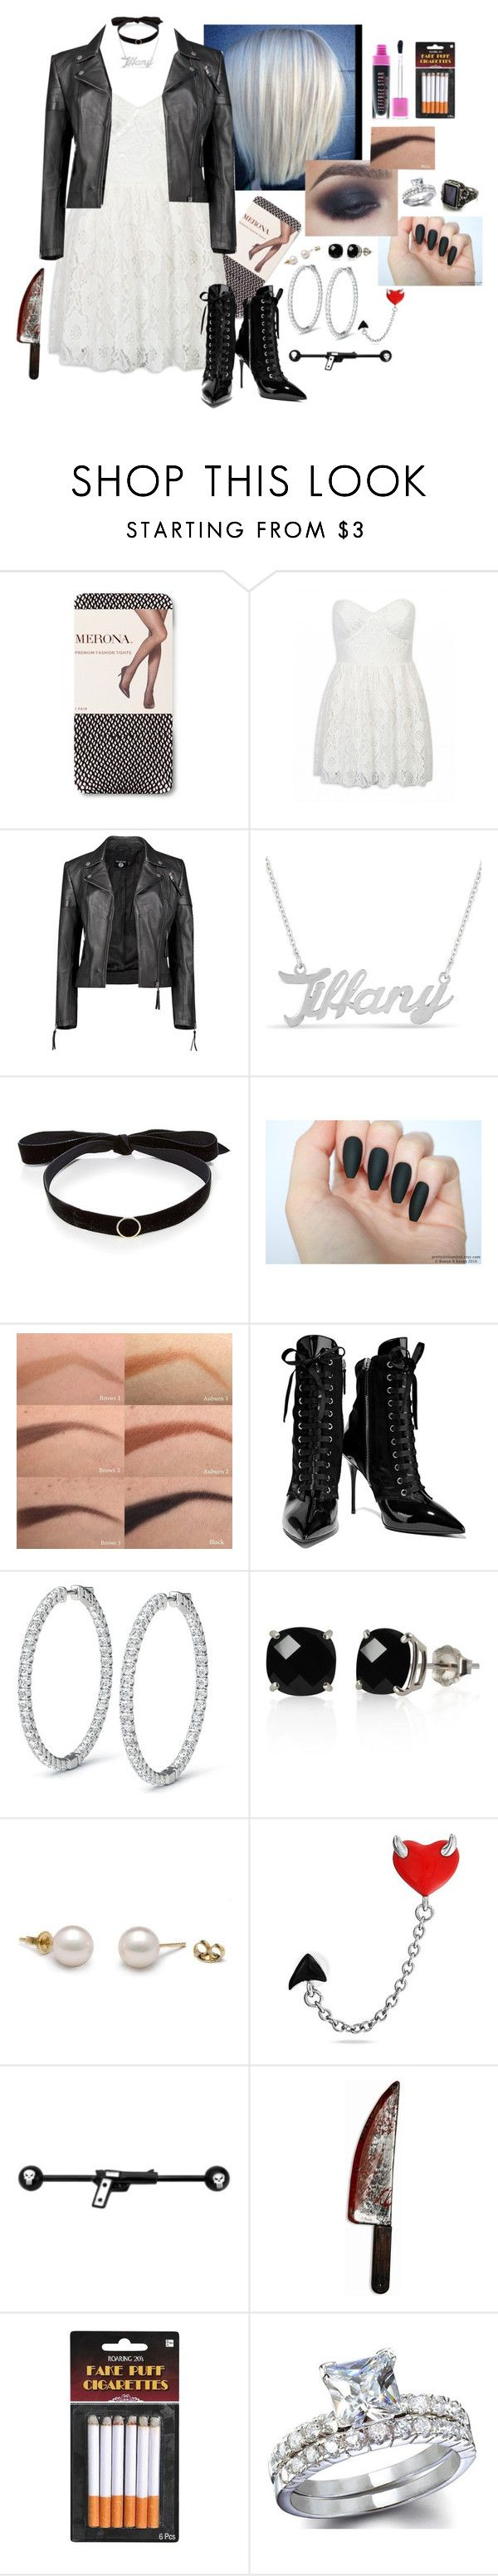 """wbtgc!brie ~ tiffany (bride of chucky)"" by zoemund ❤ liked on Polyvore featuring Boohoo, Mateo, Jeffree Star, Giuseppe Zanotti, Belk & Co. and Bling Jewelry"